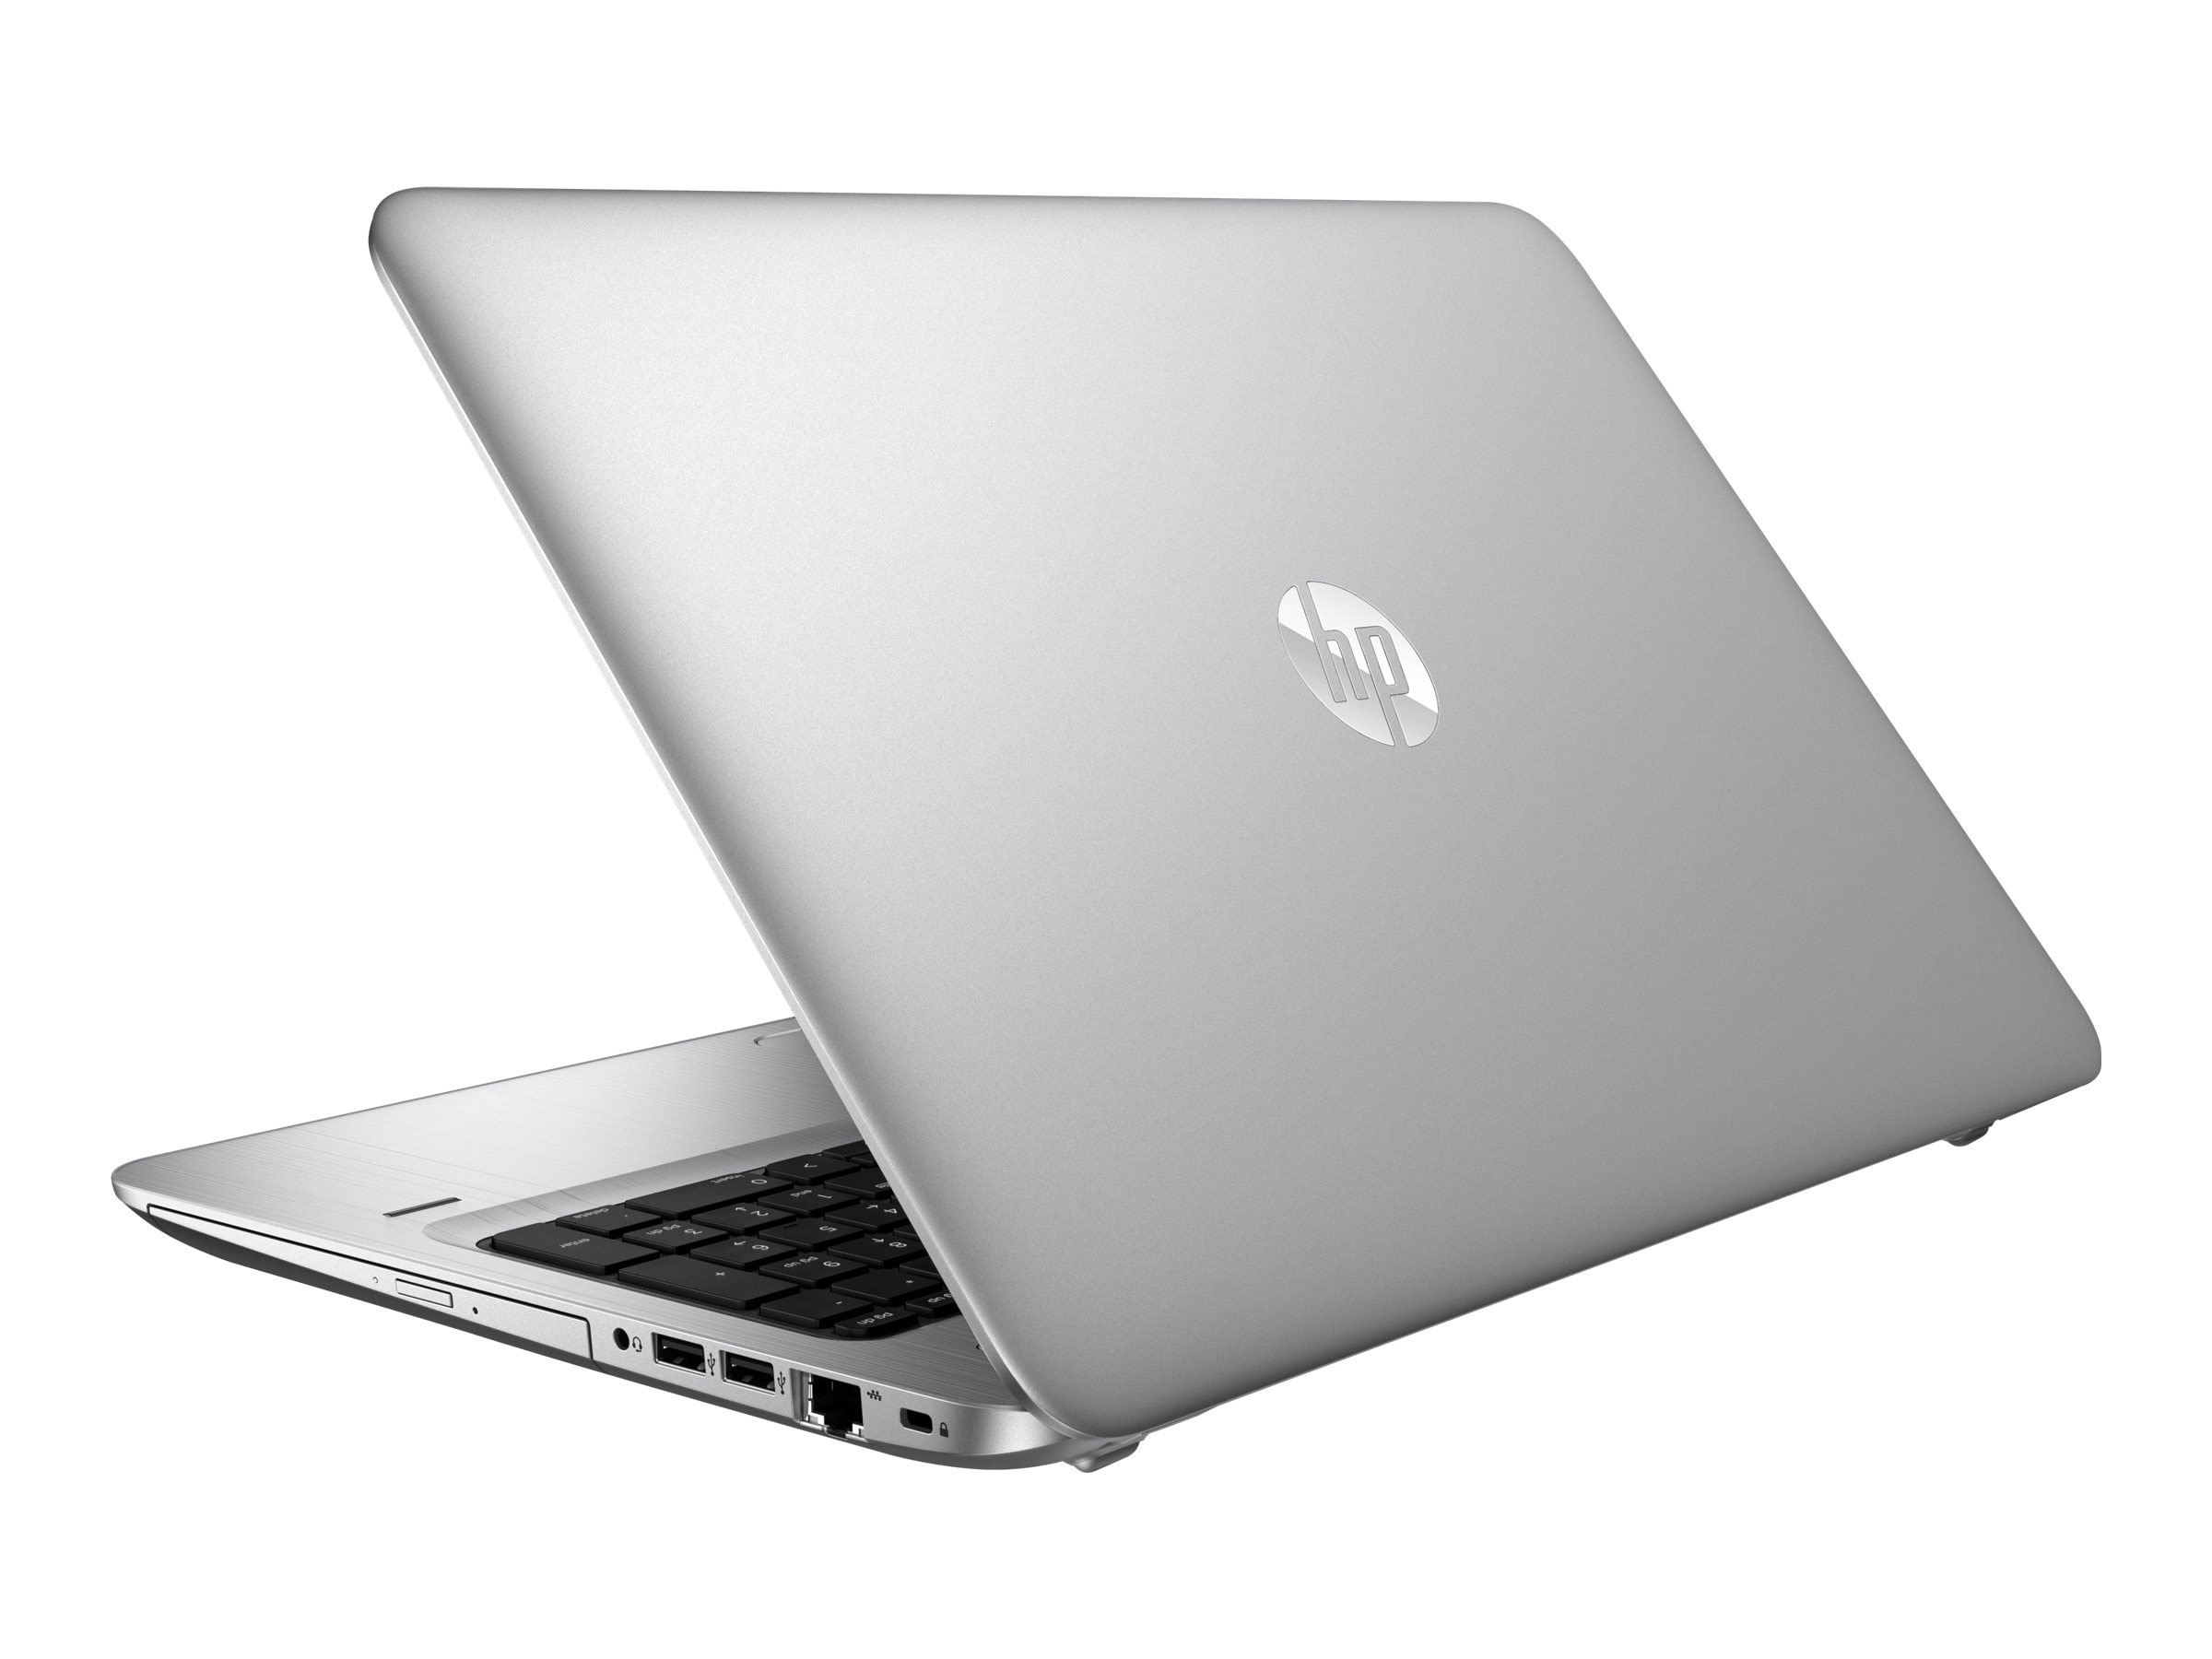 HP ProBook 450 G4 2.5GHz Core i5 15.6in display, Y9F96UT#ABA